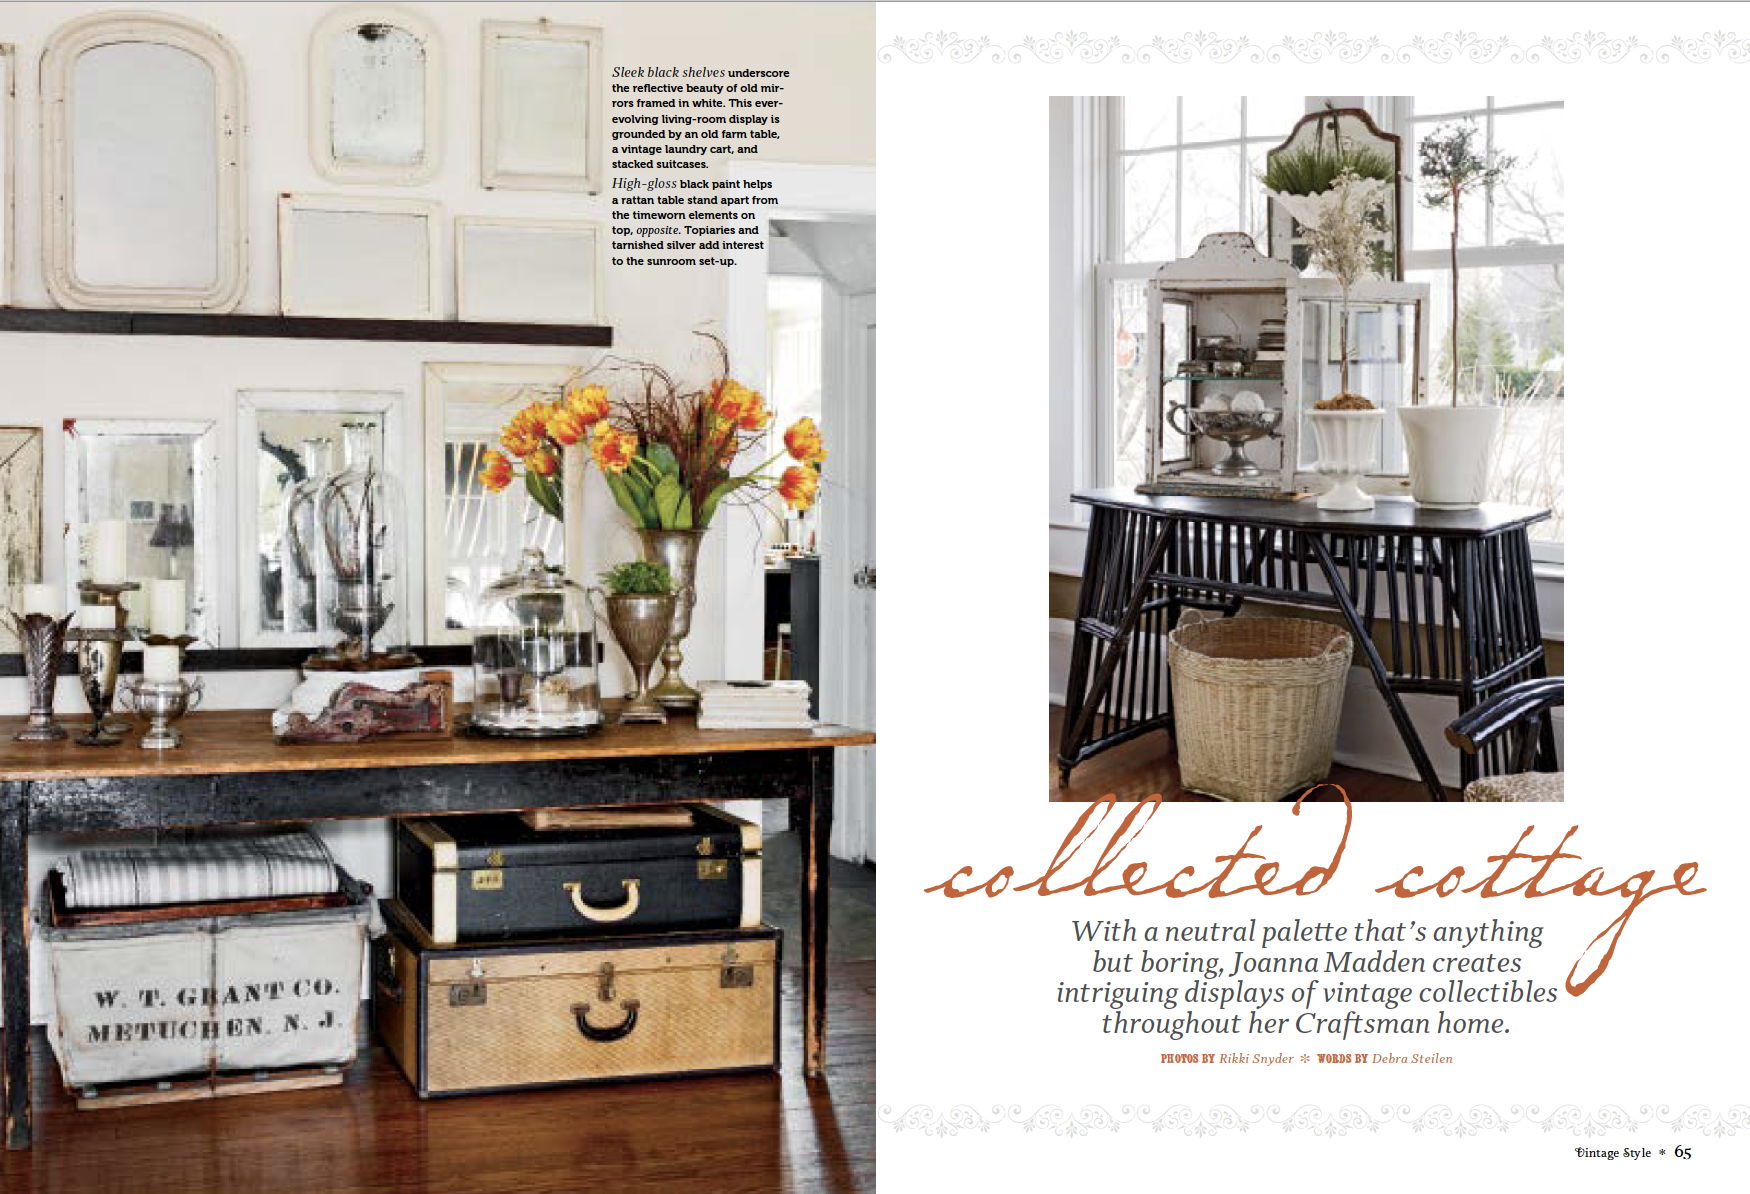 vintage-style-eclectic-interior-photography.png